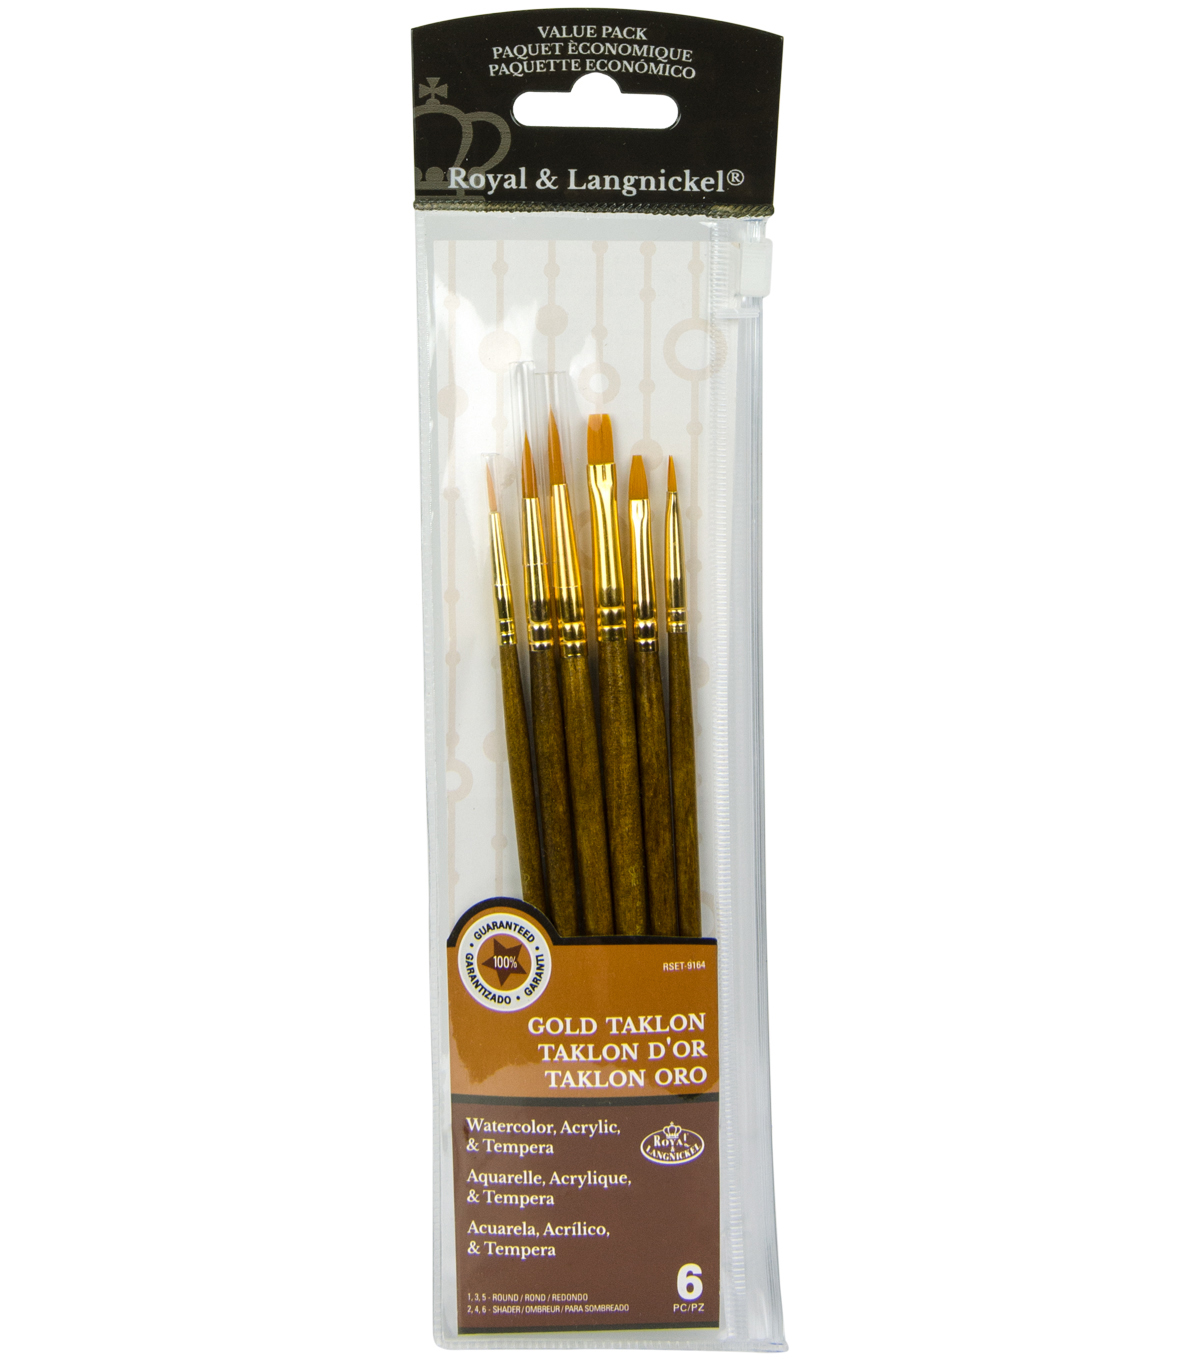 Royal Langnickel 6pc Shader/Round Brush Set-Gold Taklon